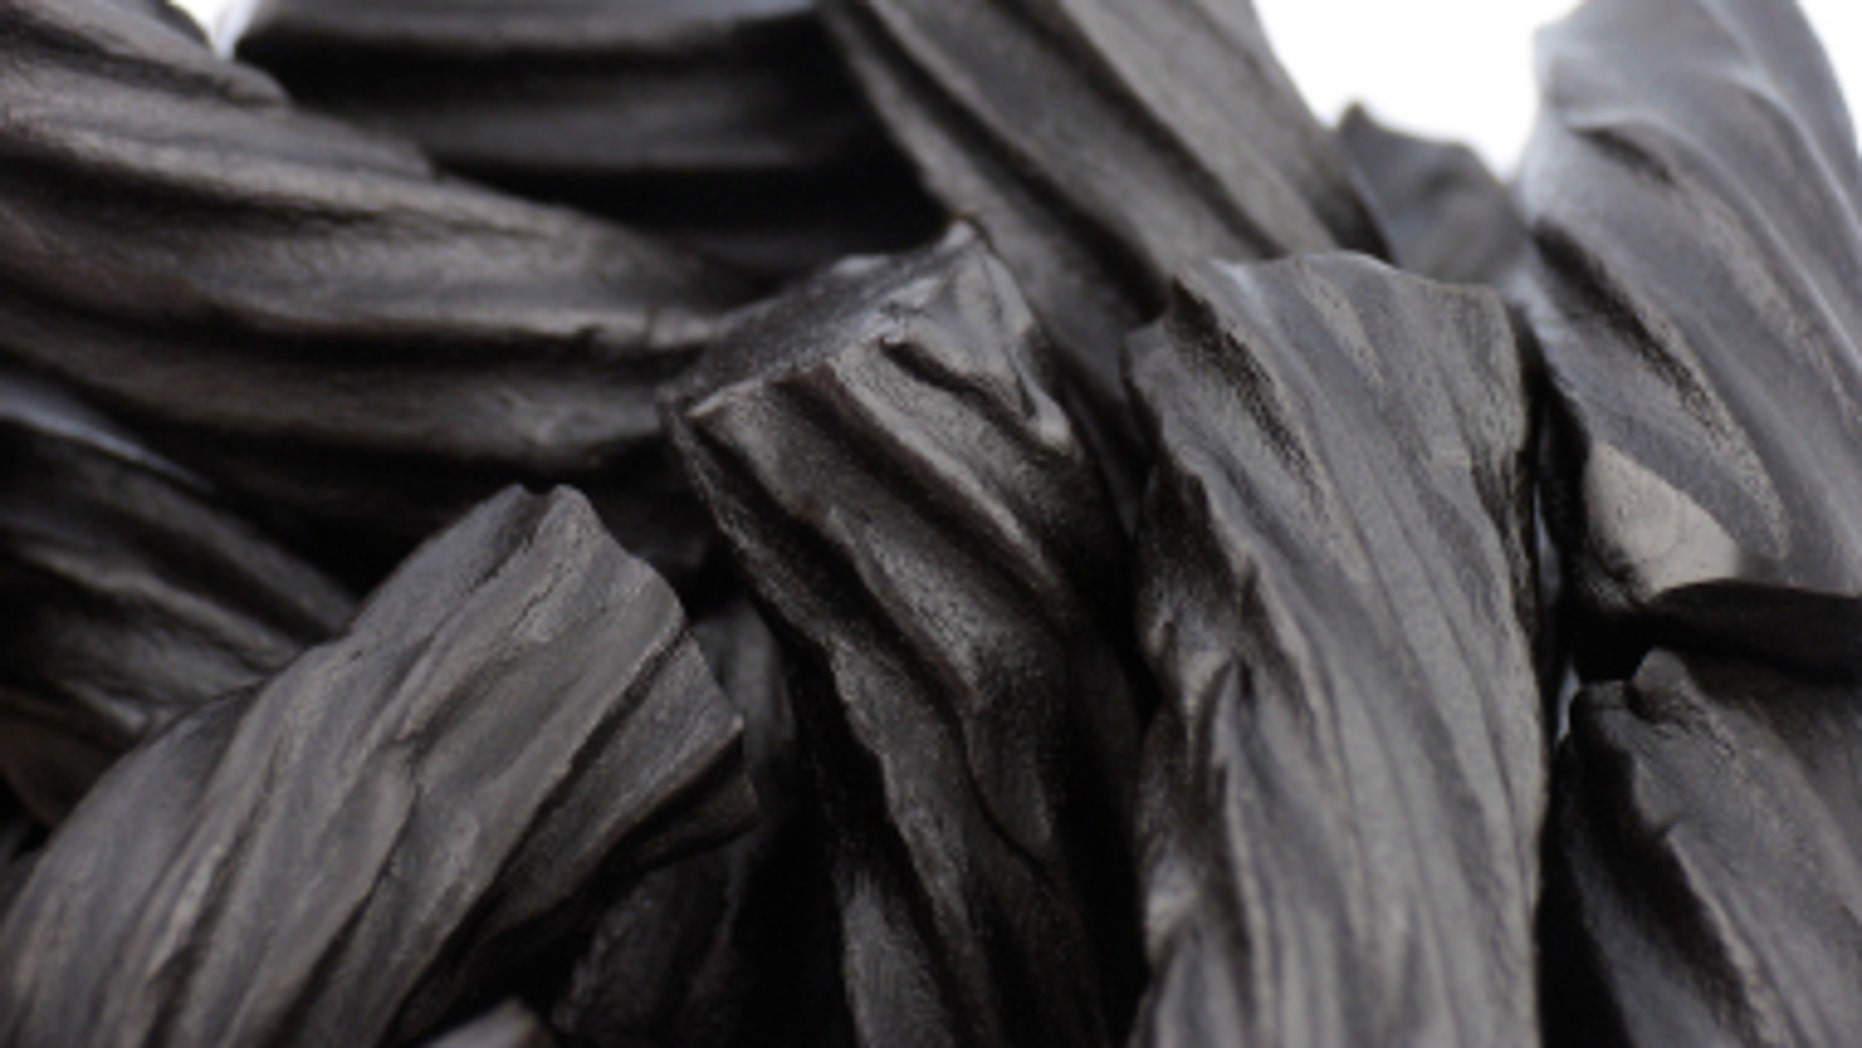 For people 40 years or older, consuming 2 ounces of black licorice a day for at least two weeks could result in arrhythmia, or an irregular heart rhythm.